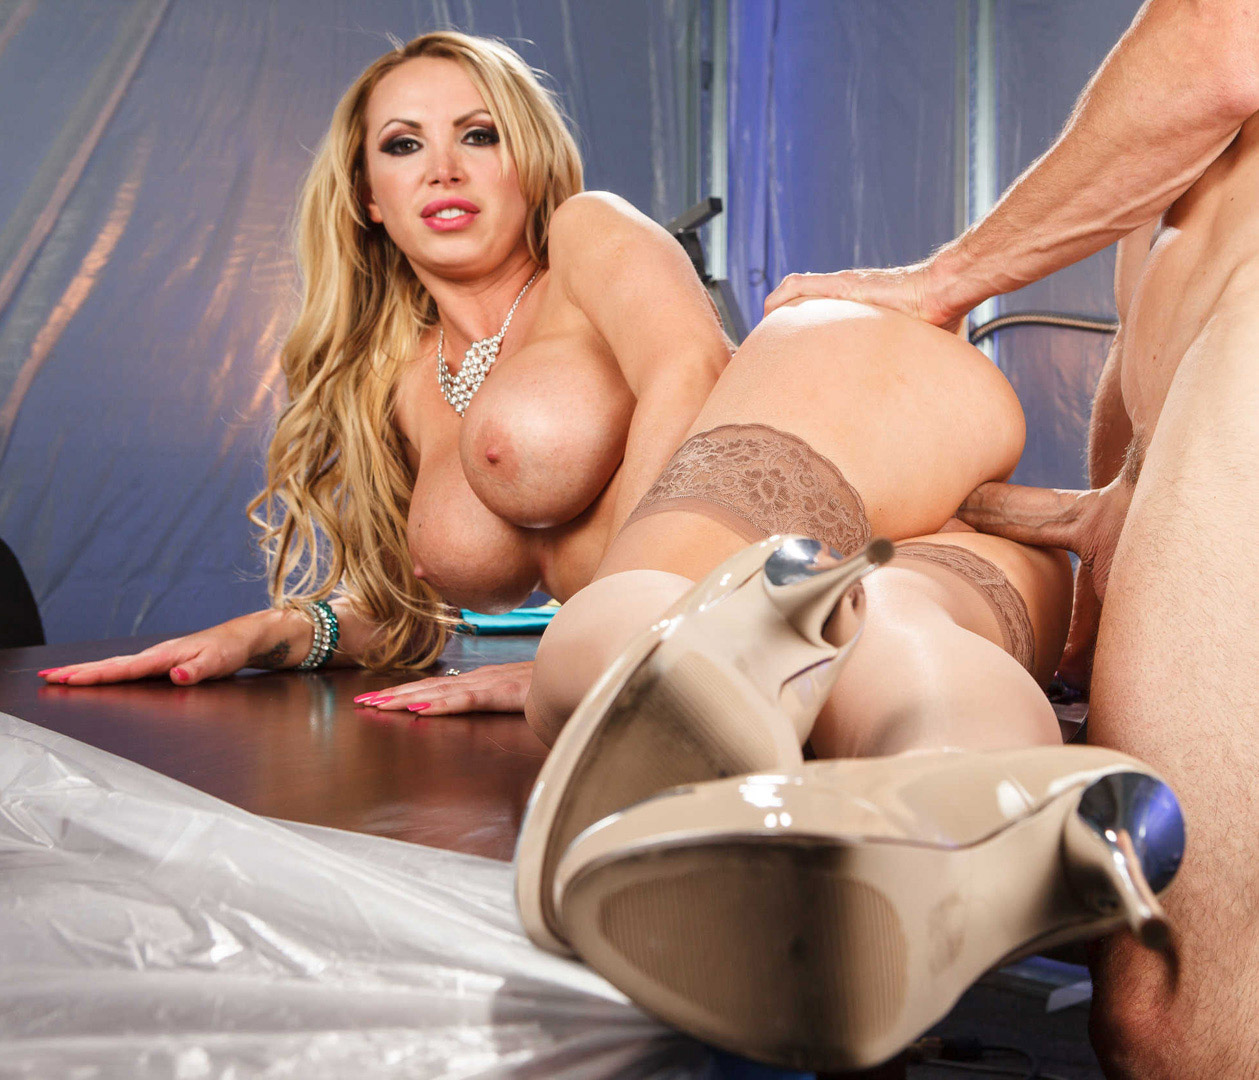 Porn star nikki benz is suing brazzers for sexual battery